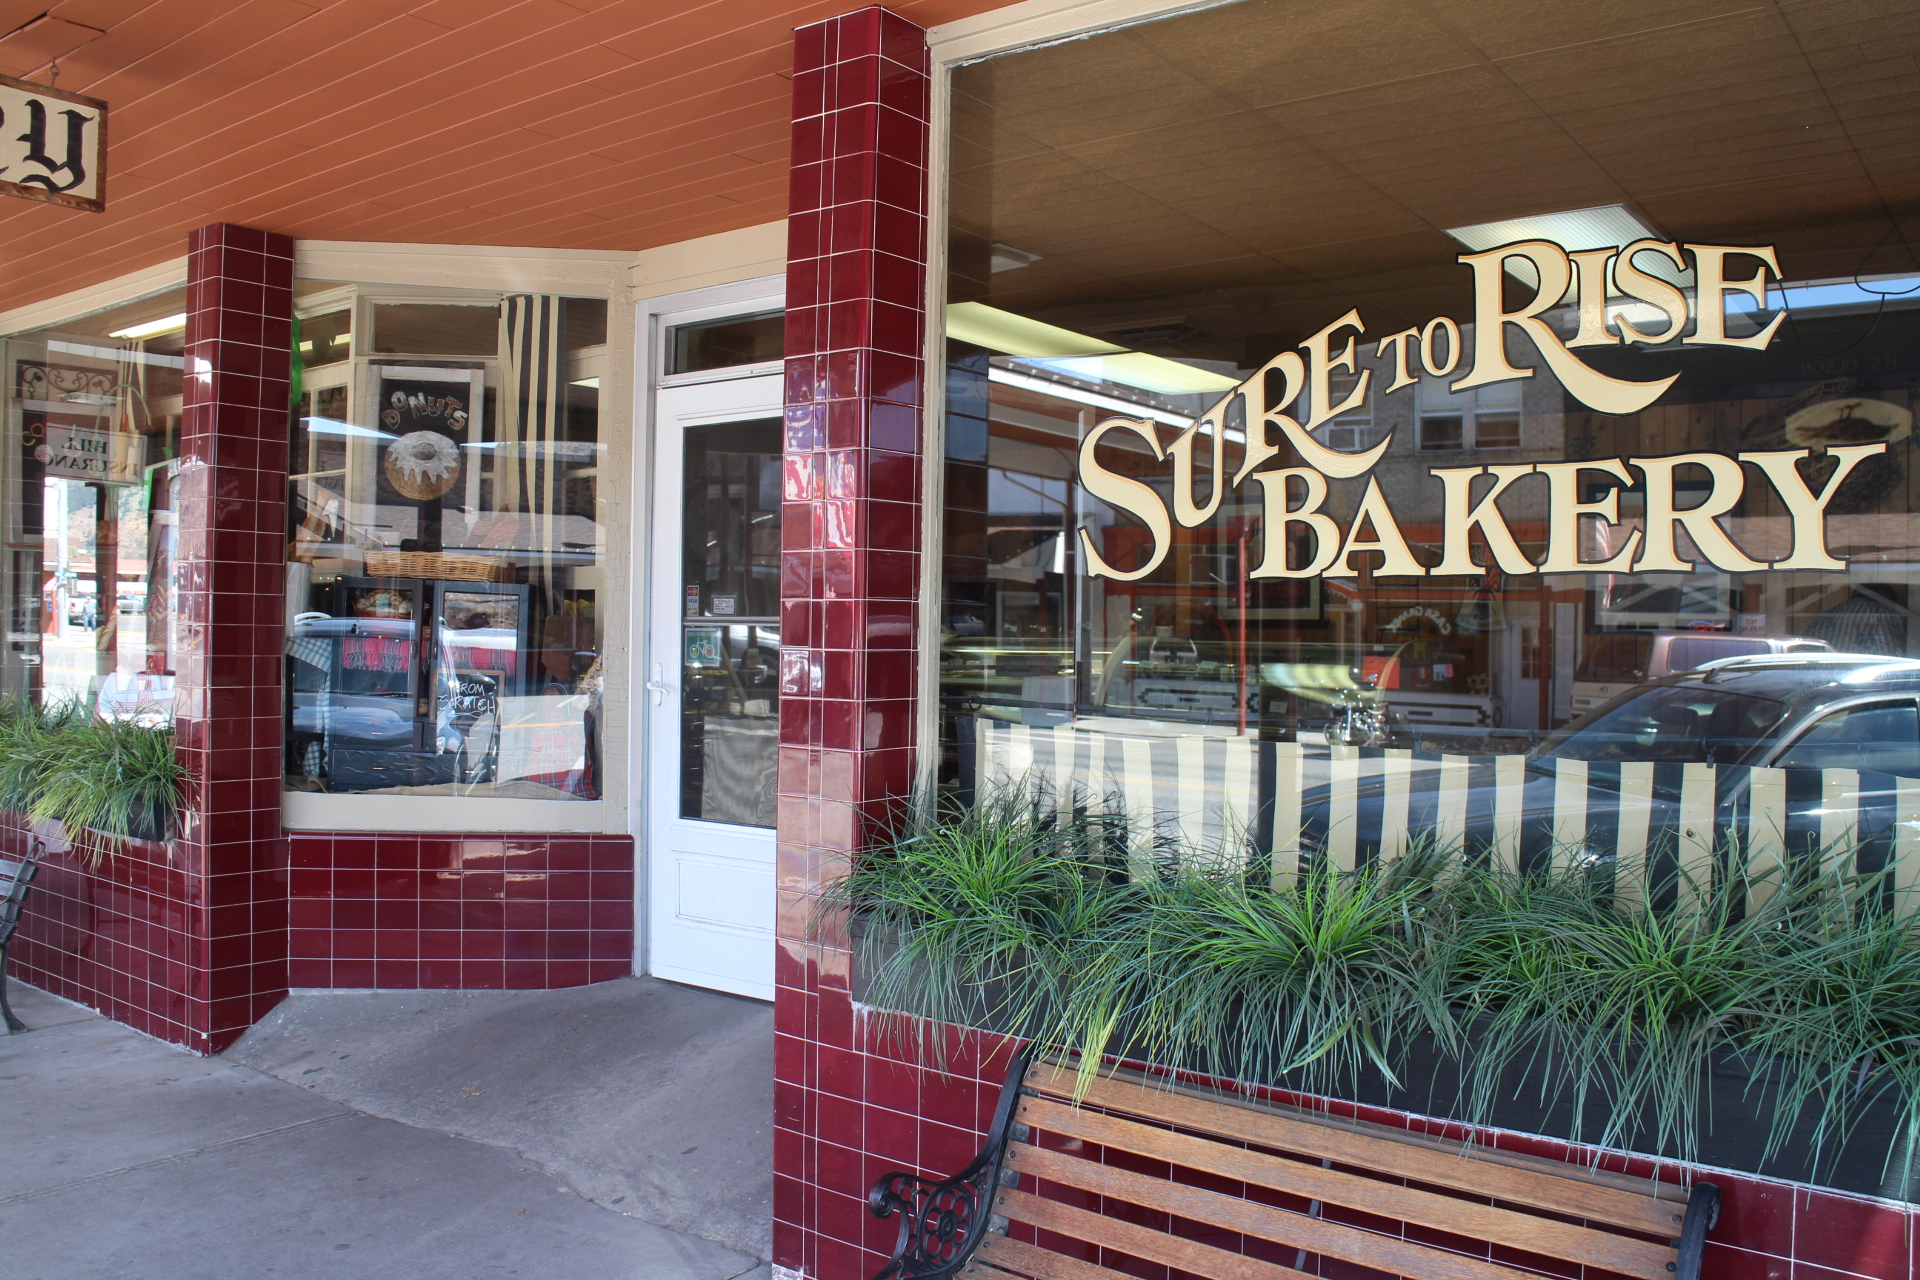 TREAT THEM TO DONUT OR COOKIE - SURE TO RISE BAKERYWhy not! The kids have been good. Pick up a treat for them and head to the park or pool to burn off the sugar rush. It's hard to pass up a fresh baked donut or cookie from Sure to Rise Bakery. Pick up a loaf of fresh baked bread while your at it!Sure to Rise Bakery, 115 Cottage Ave, Cashmere, WA. (509) 782-2424